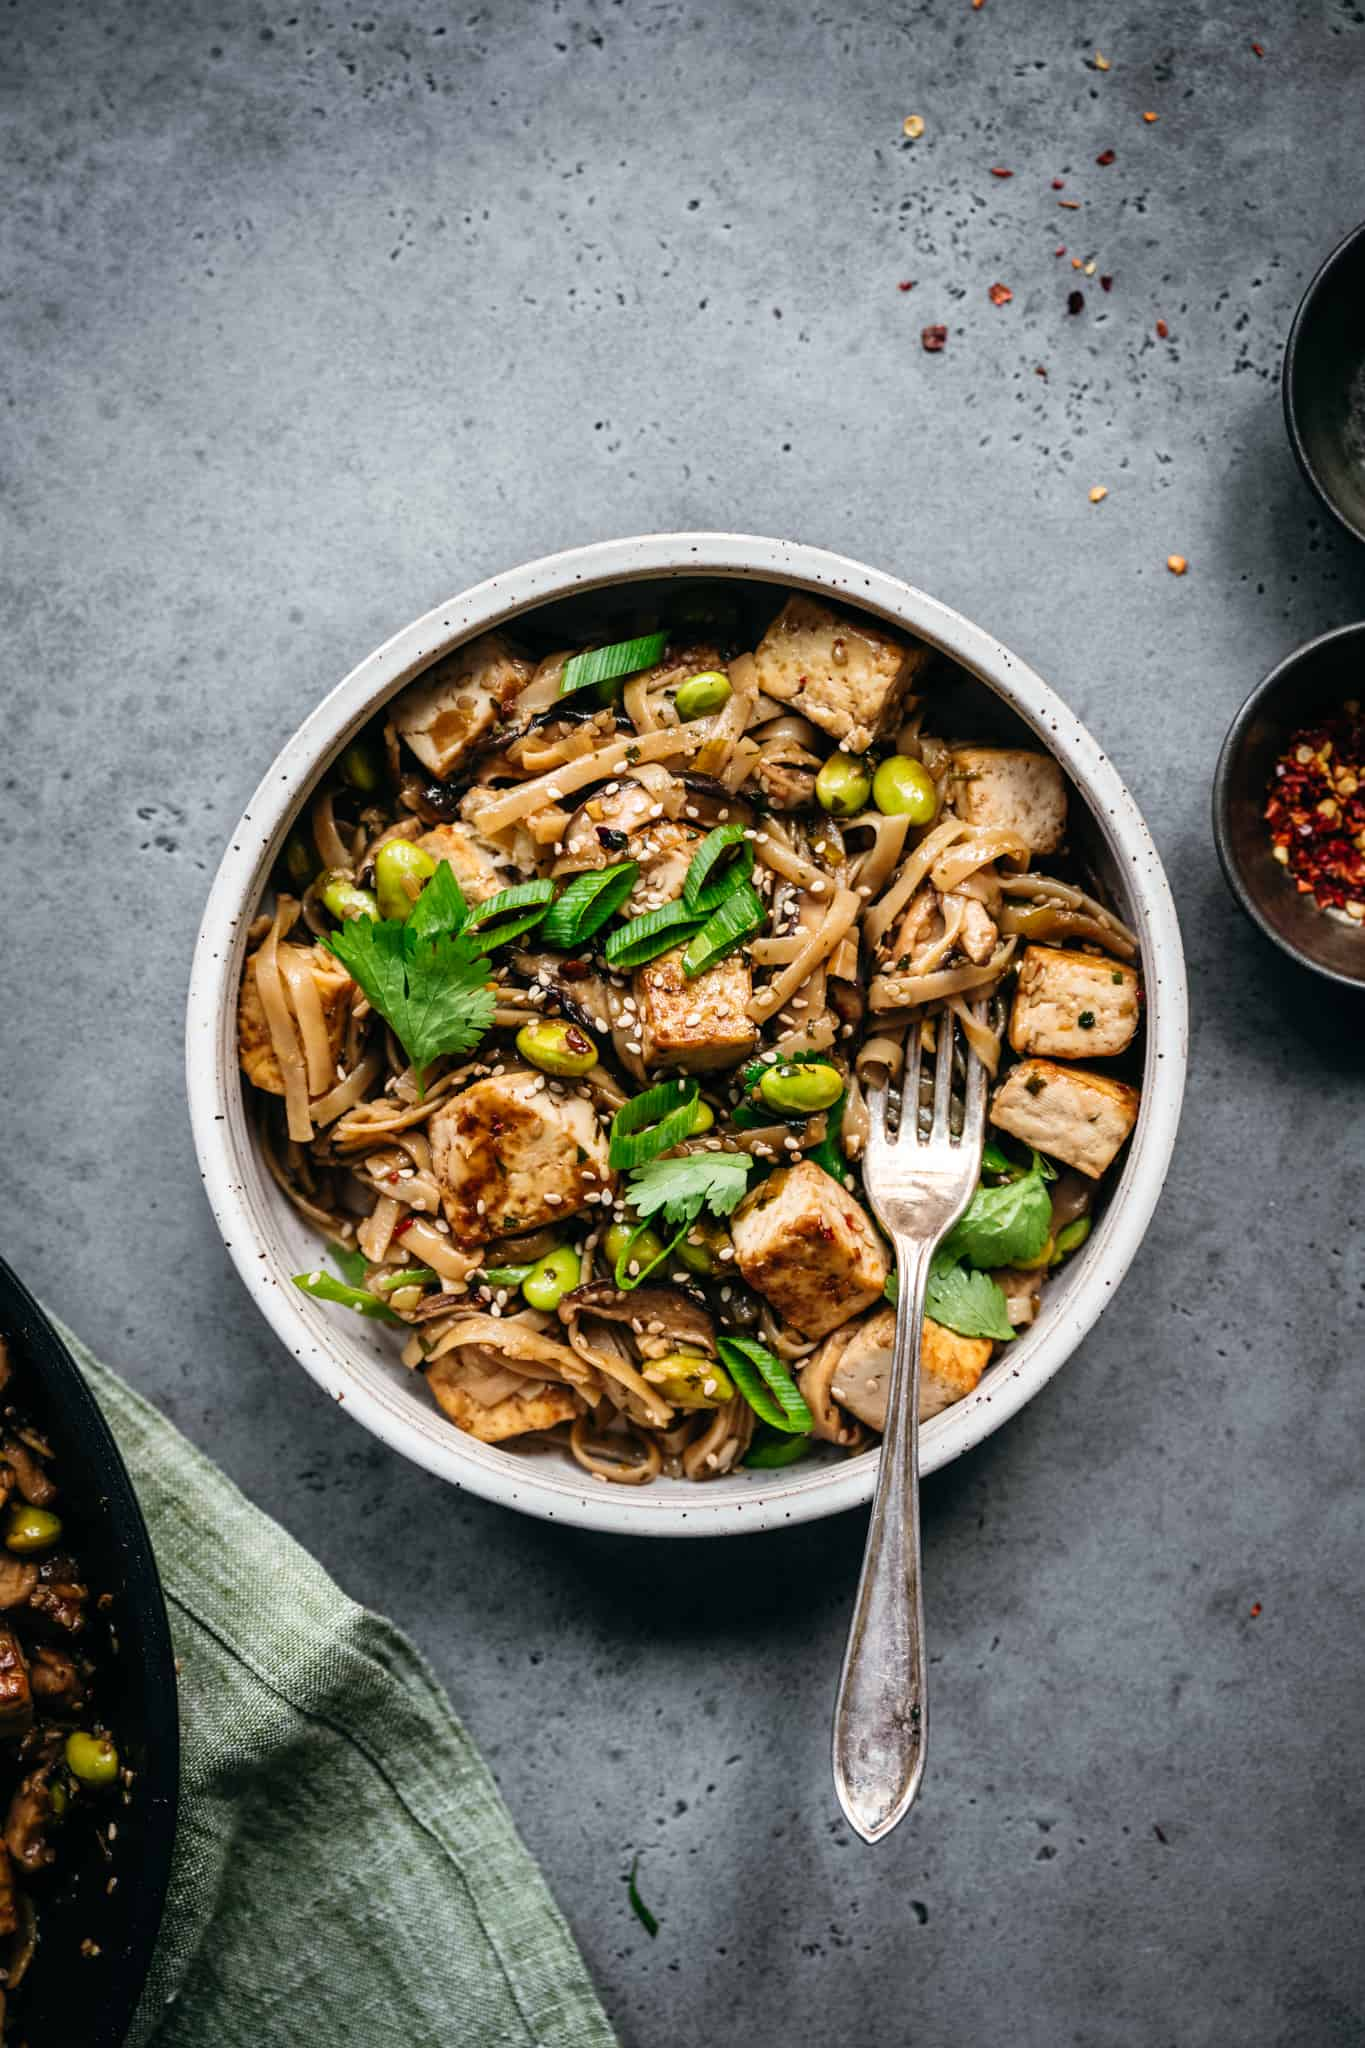 close up view of vegan rice noodles with crispy tofu, mushrooms and edamame in white bowl with fork